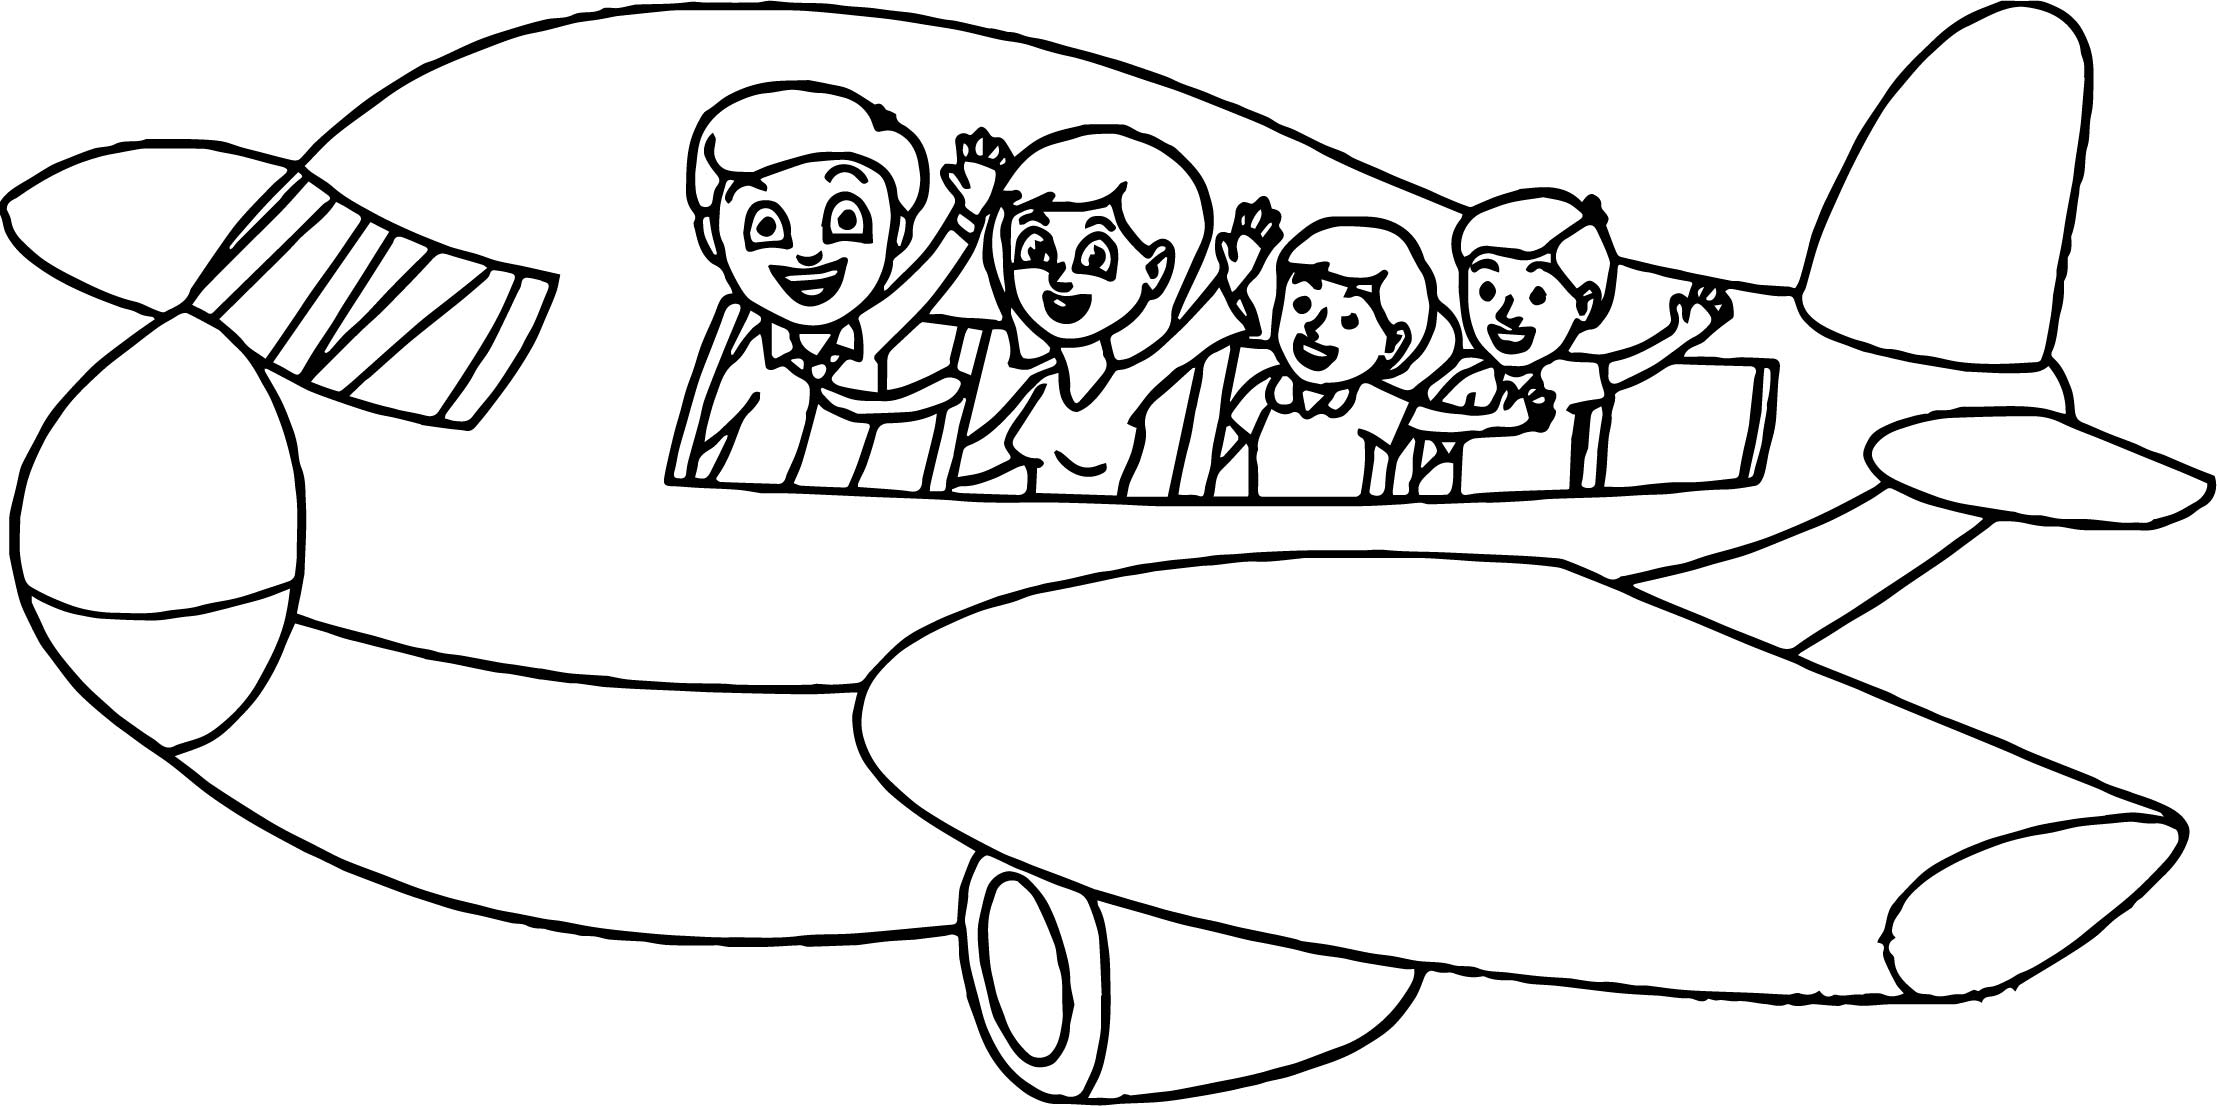 plane coloring pages - summer vacation plane coloring page